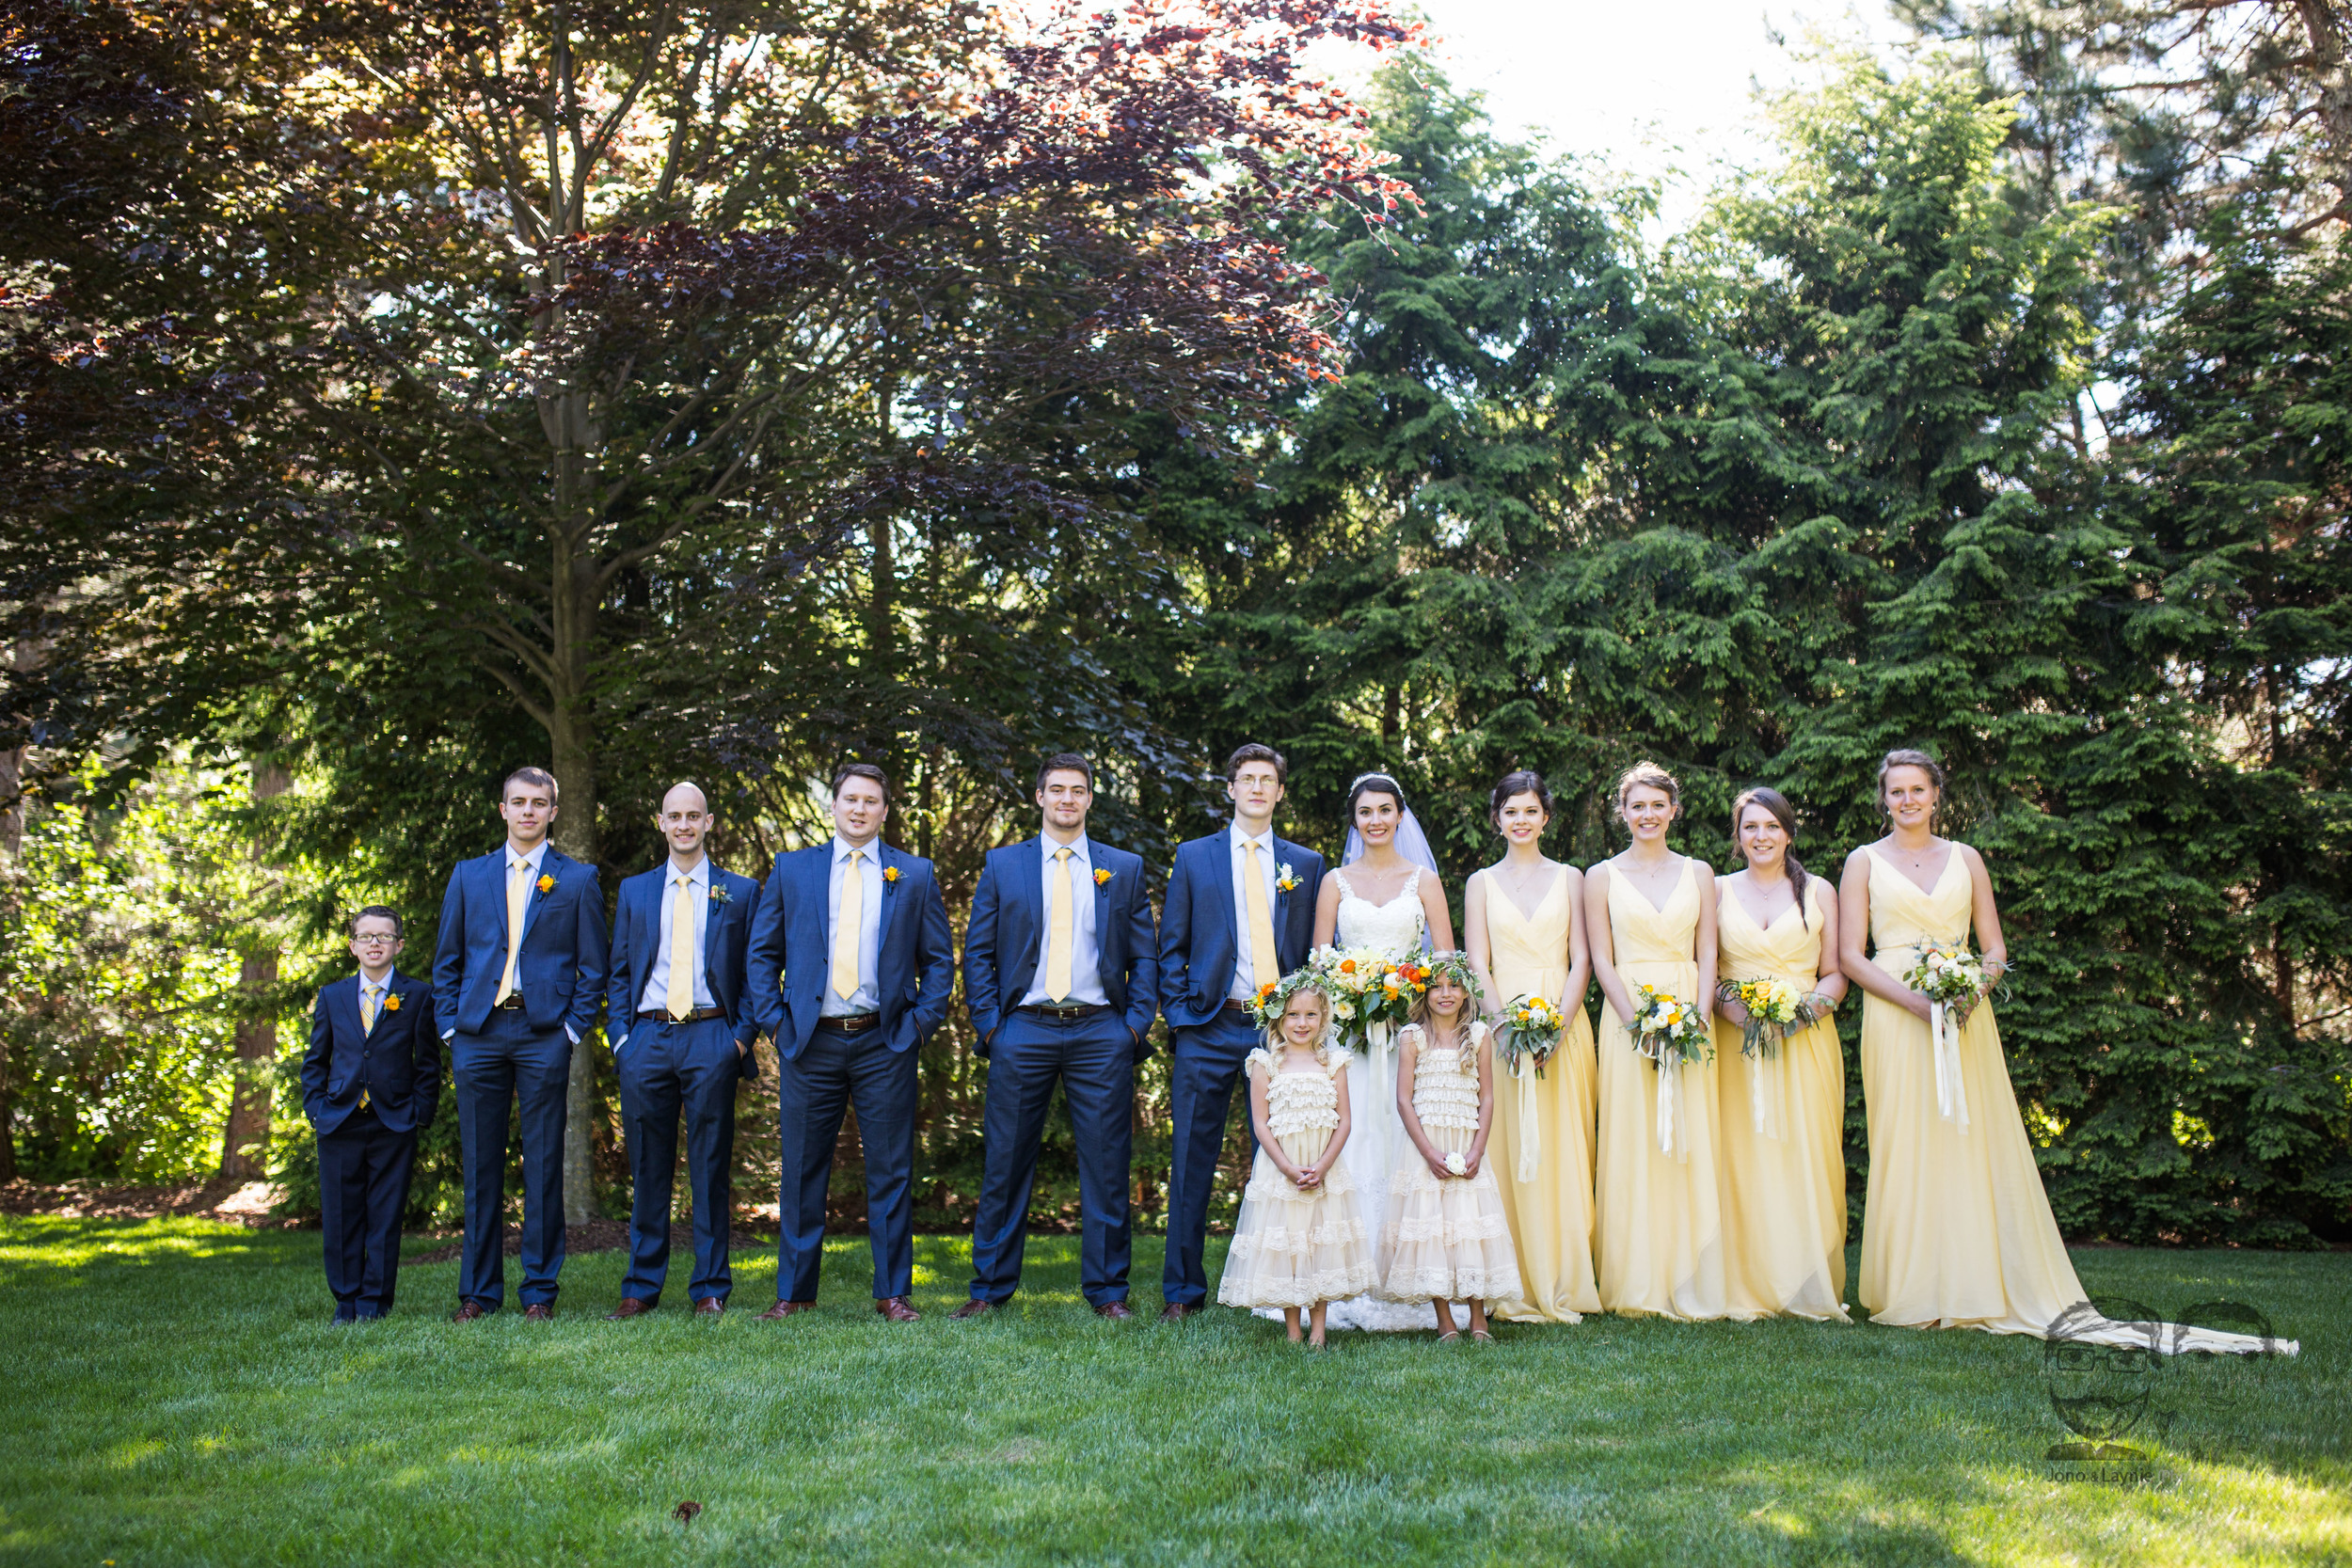 068Toronto Wedding Photographers and Videographers-Jono & Laynie Co.jpg